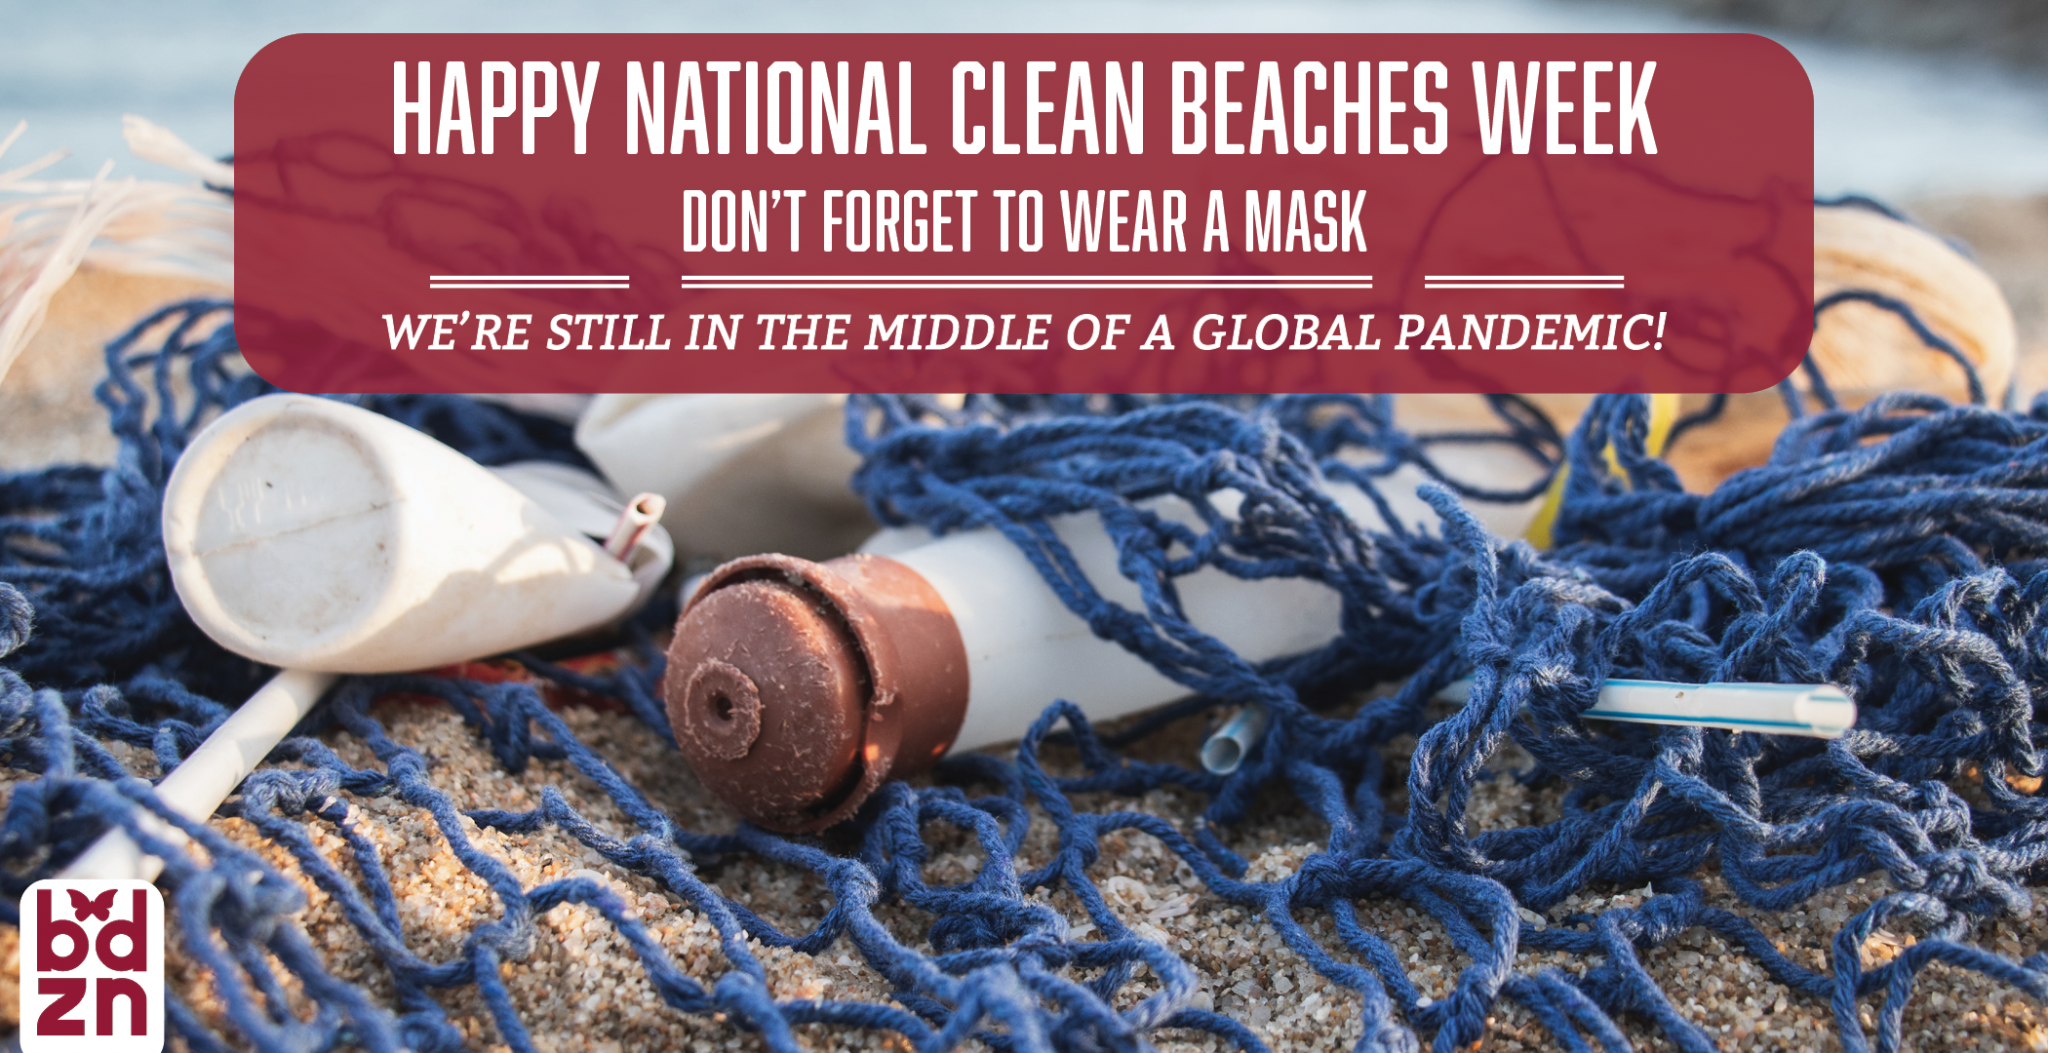 Happy National Clean Beaches Week – Don't Forget to Wear Your Mask!